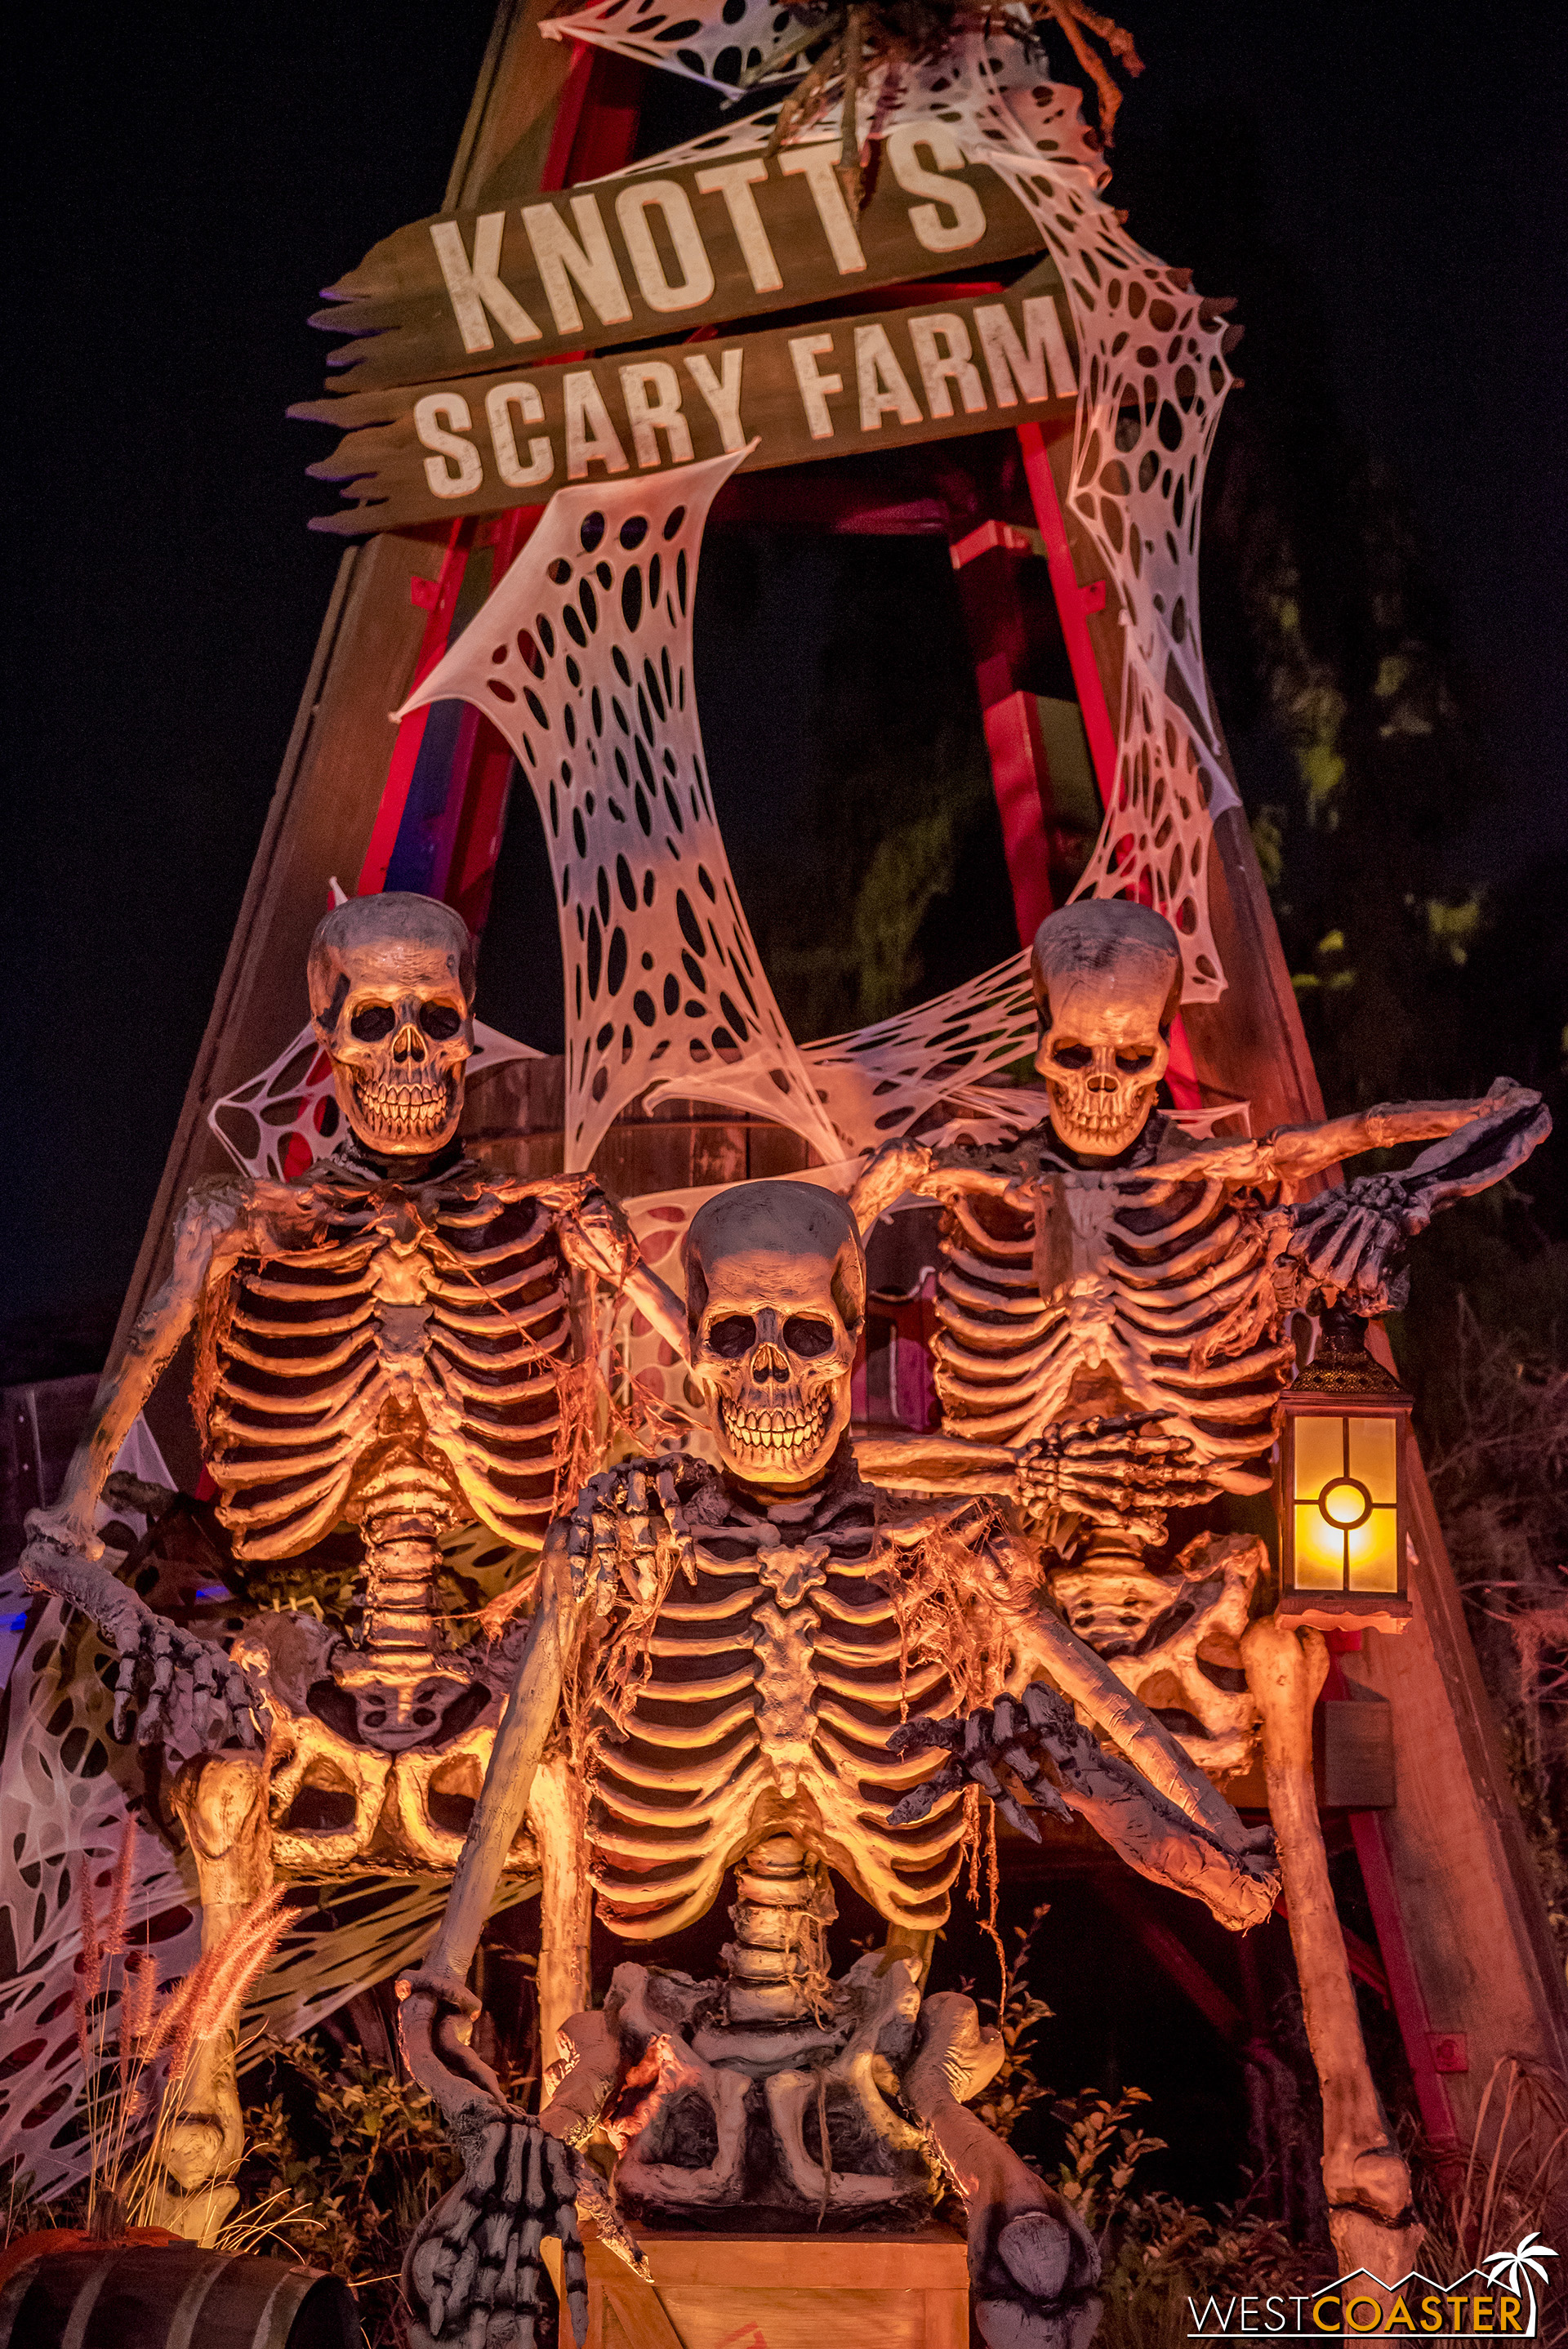 Giant skeletons look on under the shadow of the windmill.